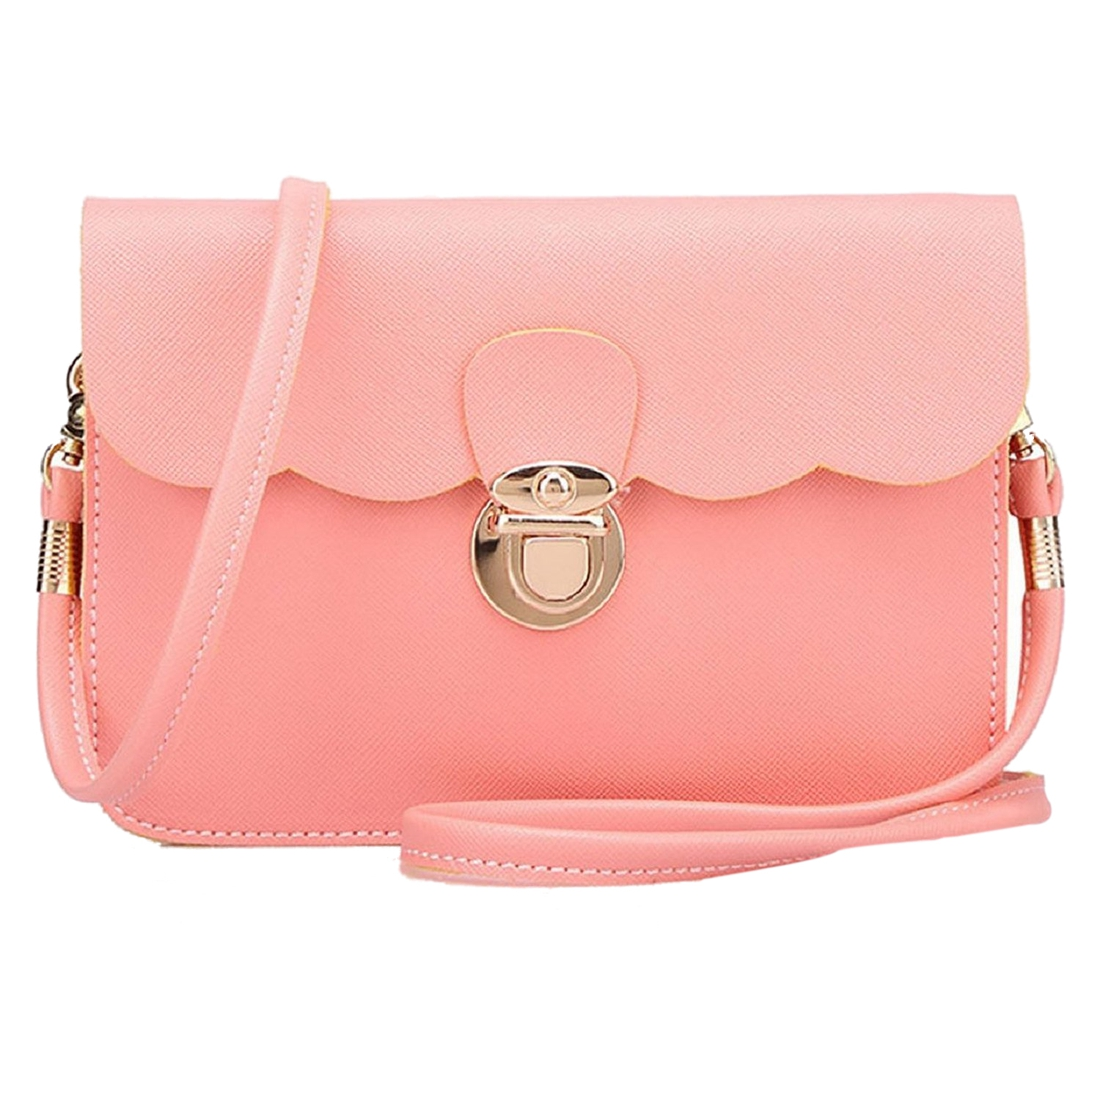 b6690408dc92 VSEN Hot Fashion Women s PU Leather Shoulder Bag Clutch Handbag Tote Purse  Hobo Messenger (Pink)-in Shoulder Bags from Luggage   Bags on  Aliexpress.com ...